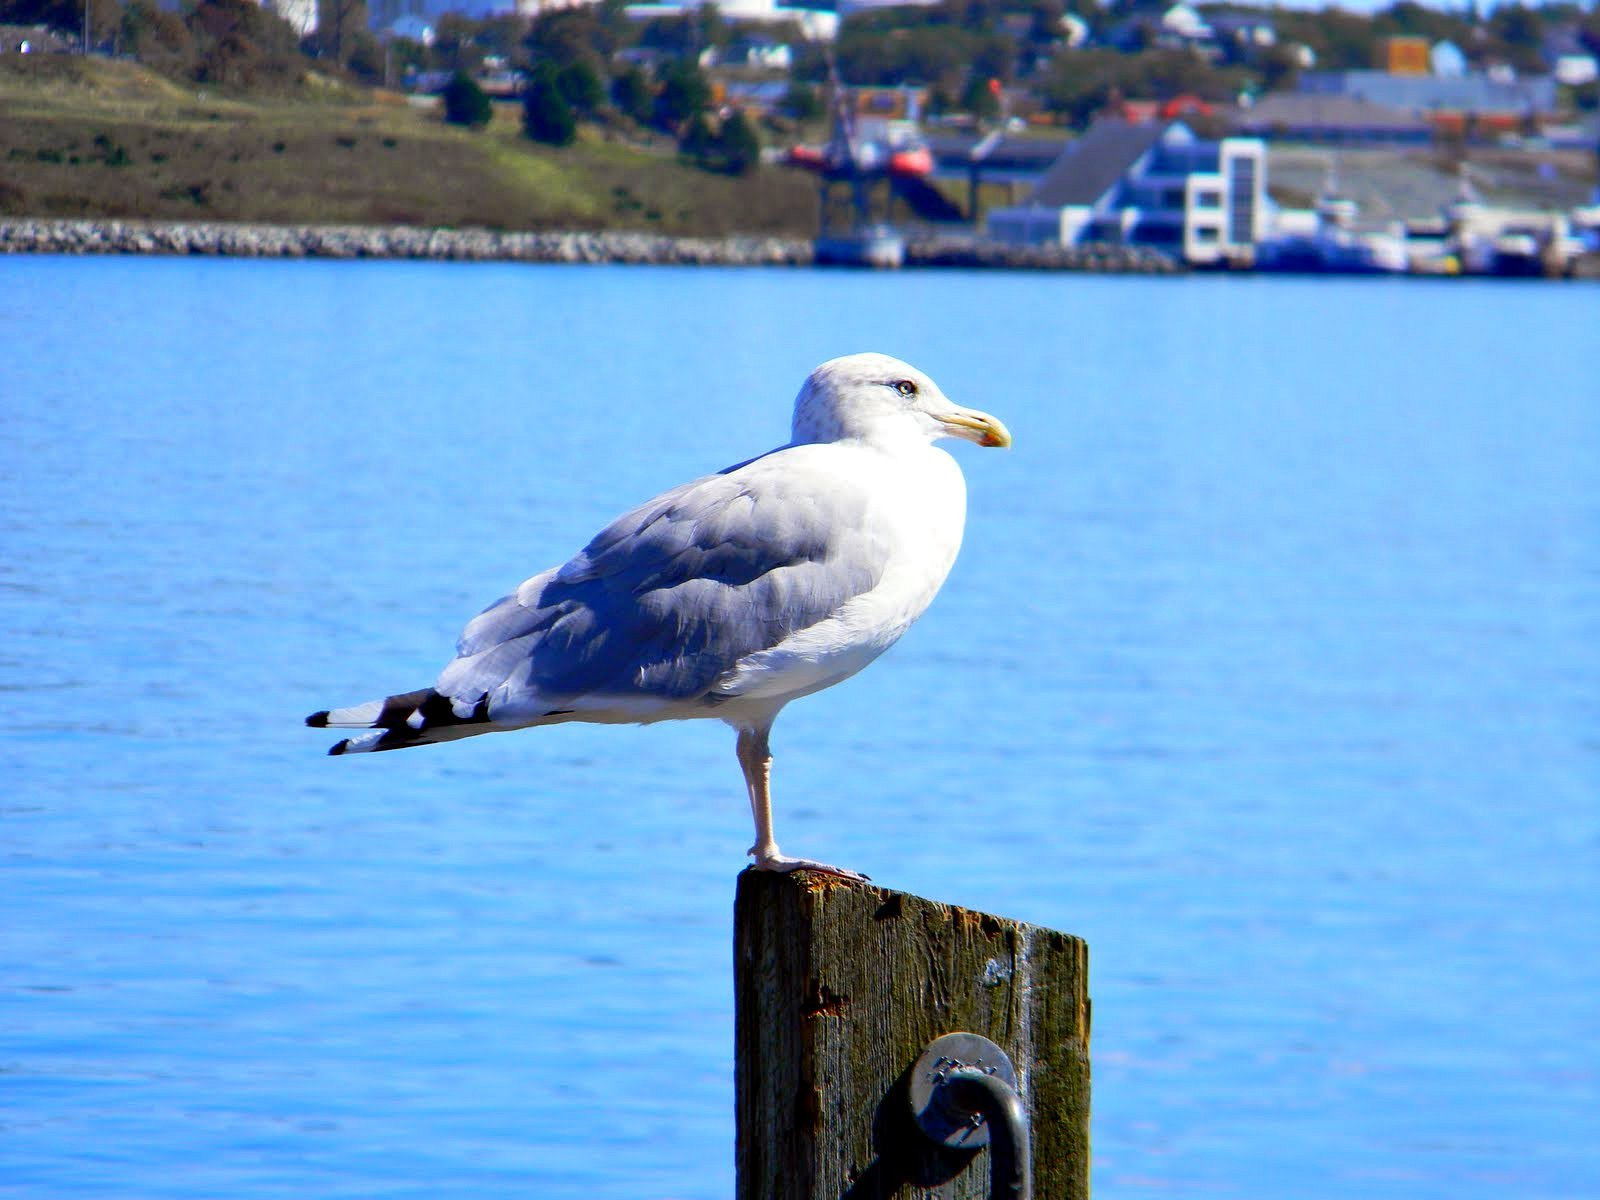 Photograph Seagull at the Docks by Victor Alves on 500px